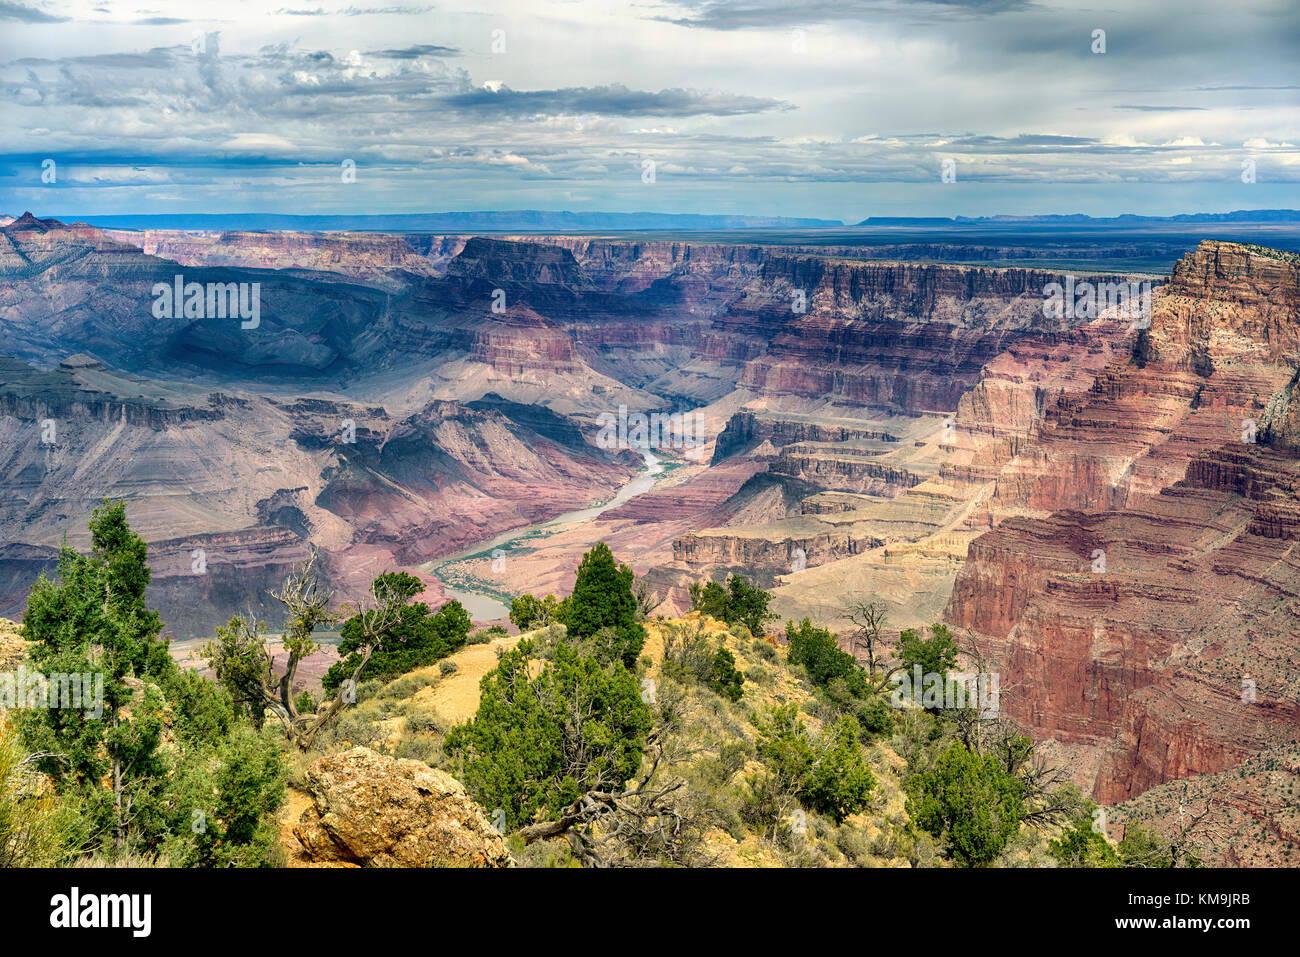 Grand Canyon National Park Arizona landscape view with the Colorado River in the distance. Layered bands of red Stock Photo